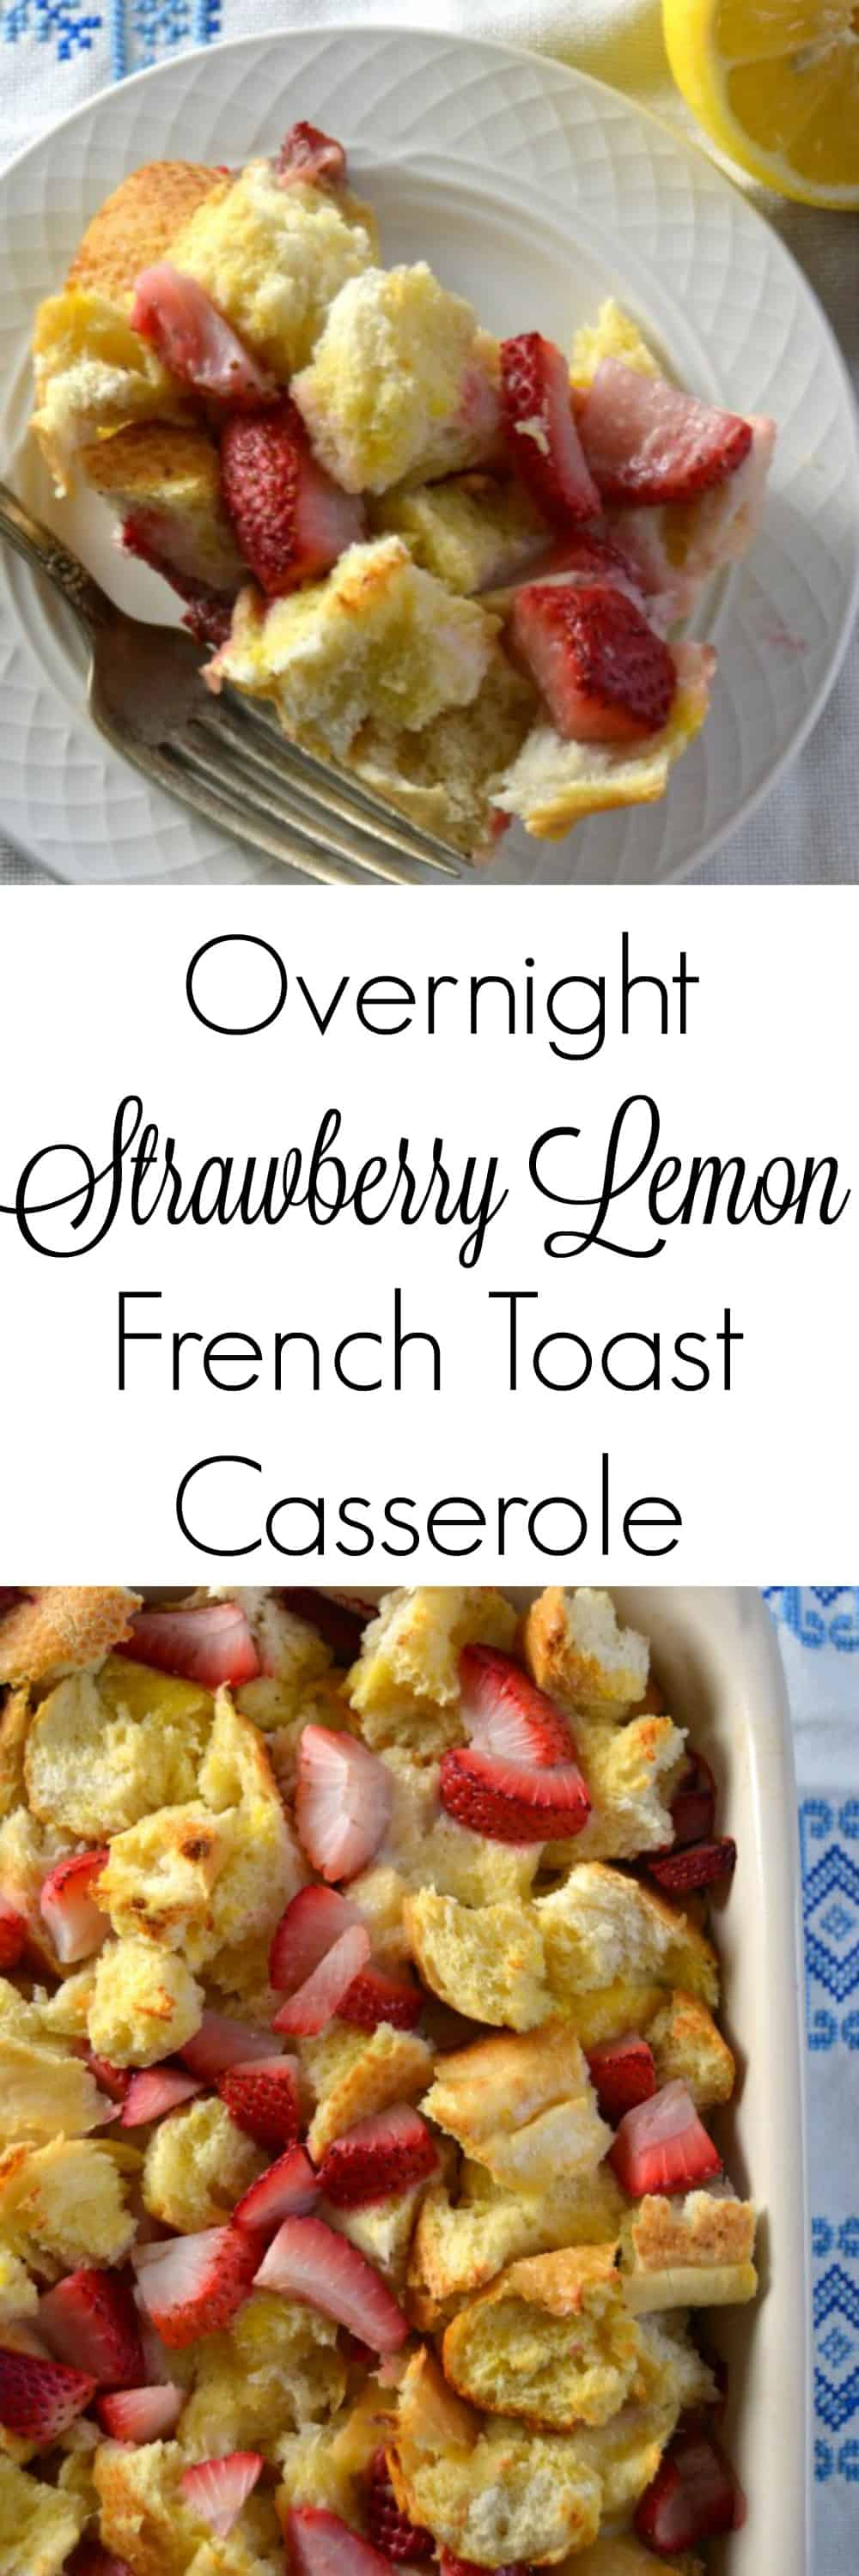 Overnight Strawberry Lemon French Toast Casserole - French Toast Bake - Overnight French Toast Casserole - French Toast Casserole Easy - French Toast Bake - Easter Brunch Recipe